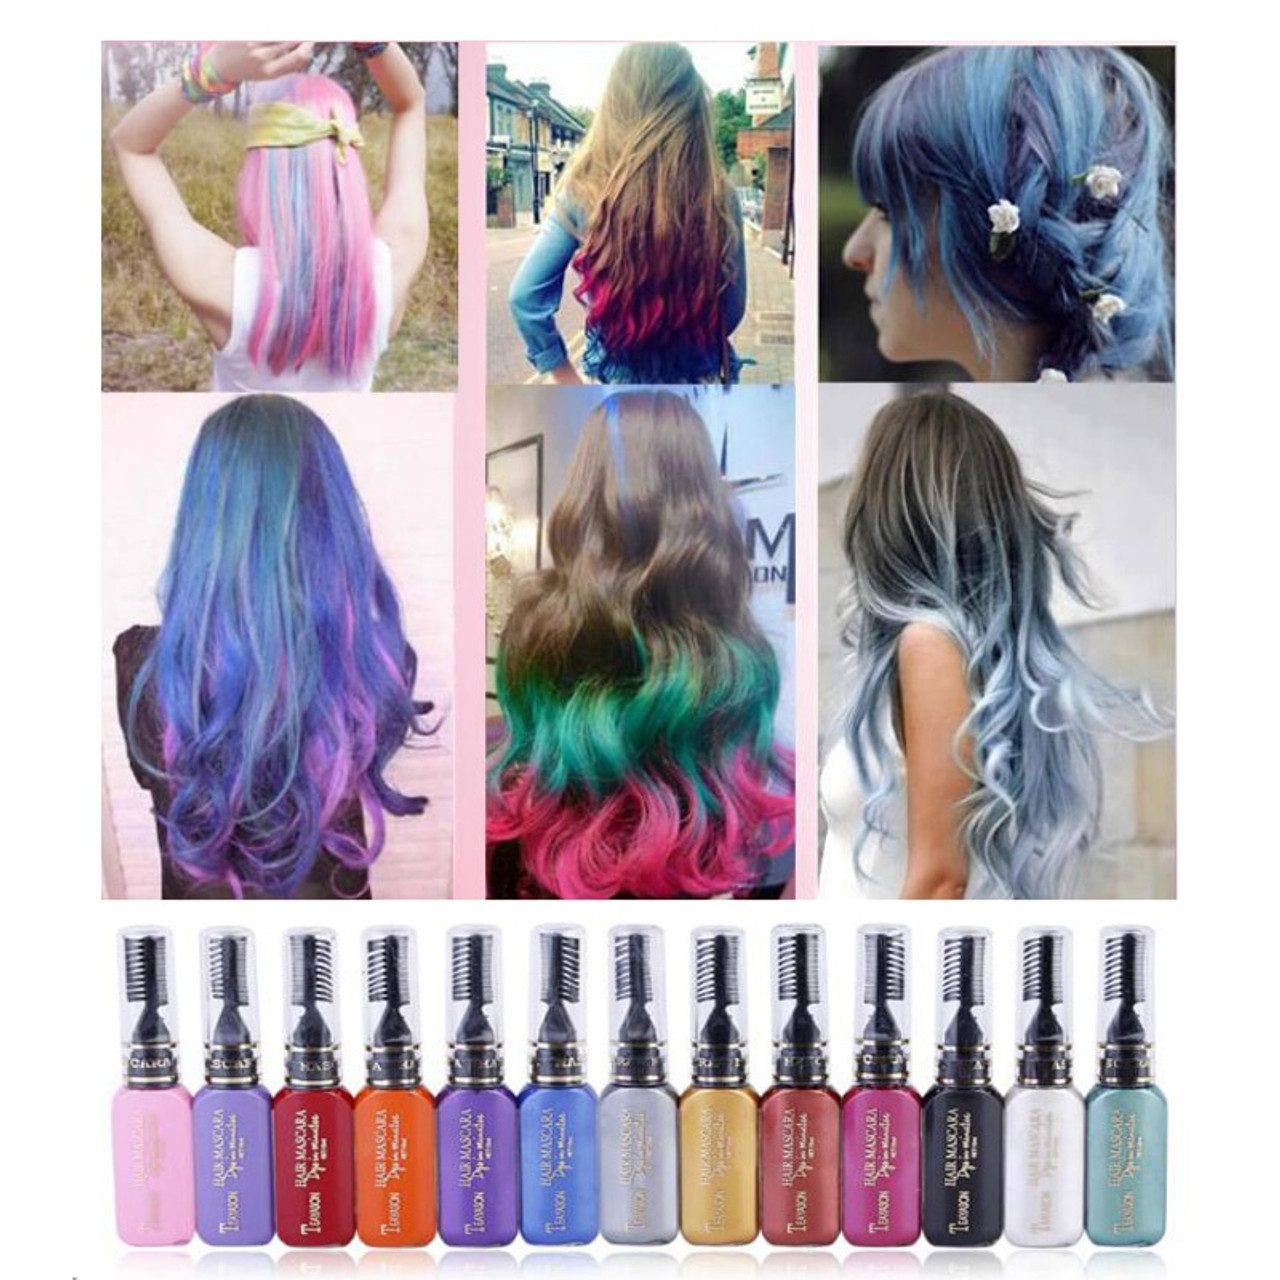 Fashion 13 Colors One-time Beauty Hair Dye Temporary Non-toxic DIY Hair  Color Mascara Cream Washable Hair Dye Crayons